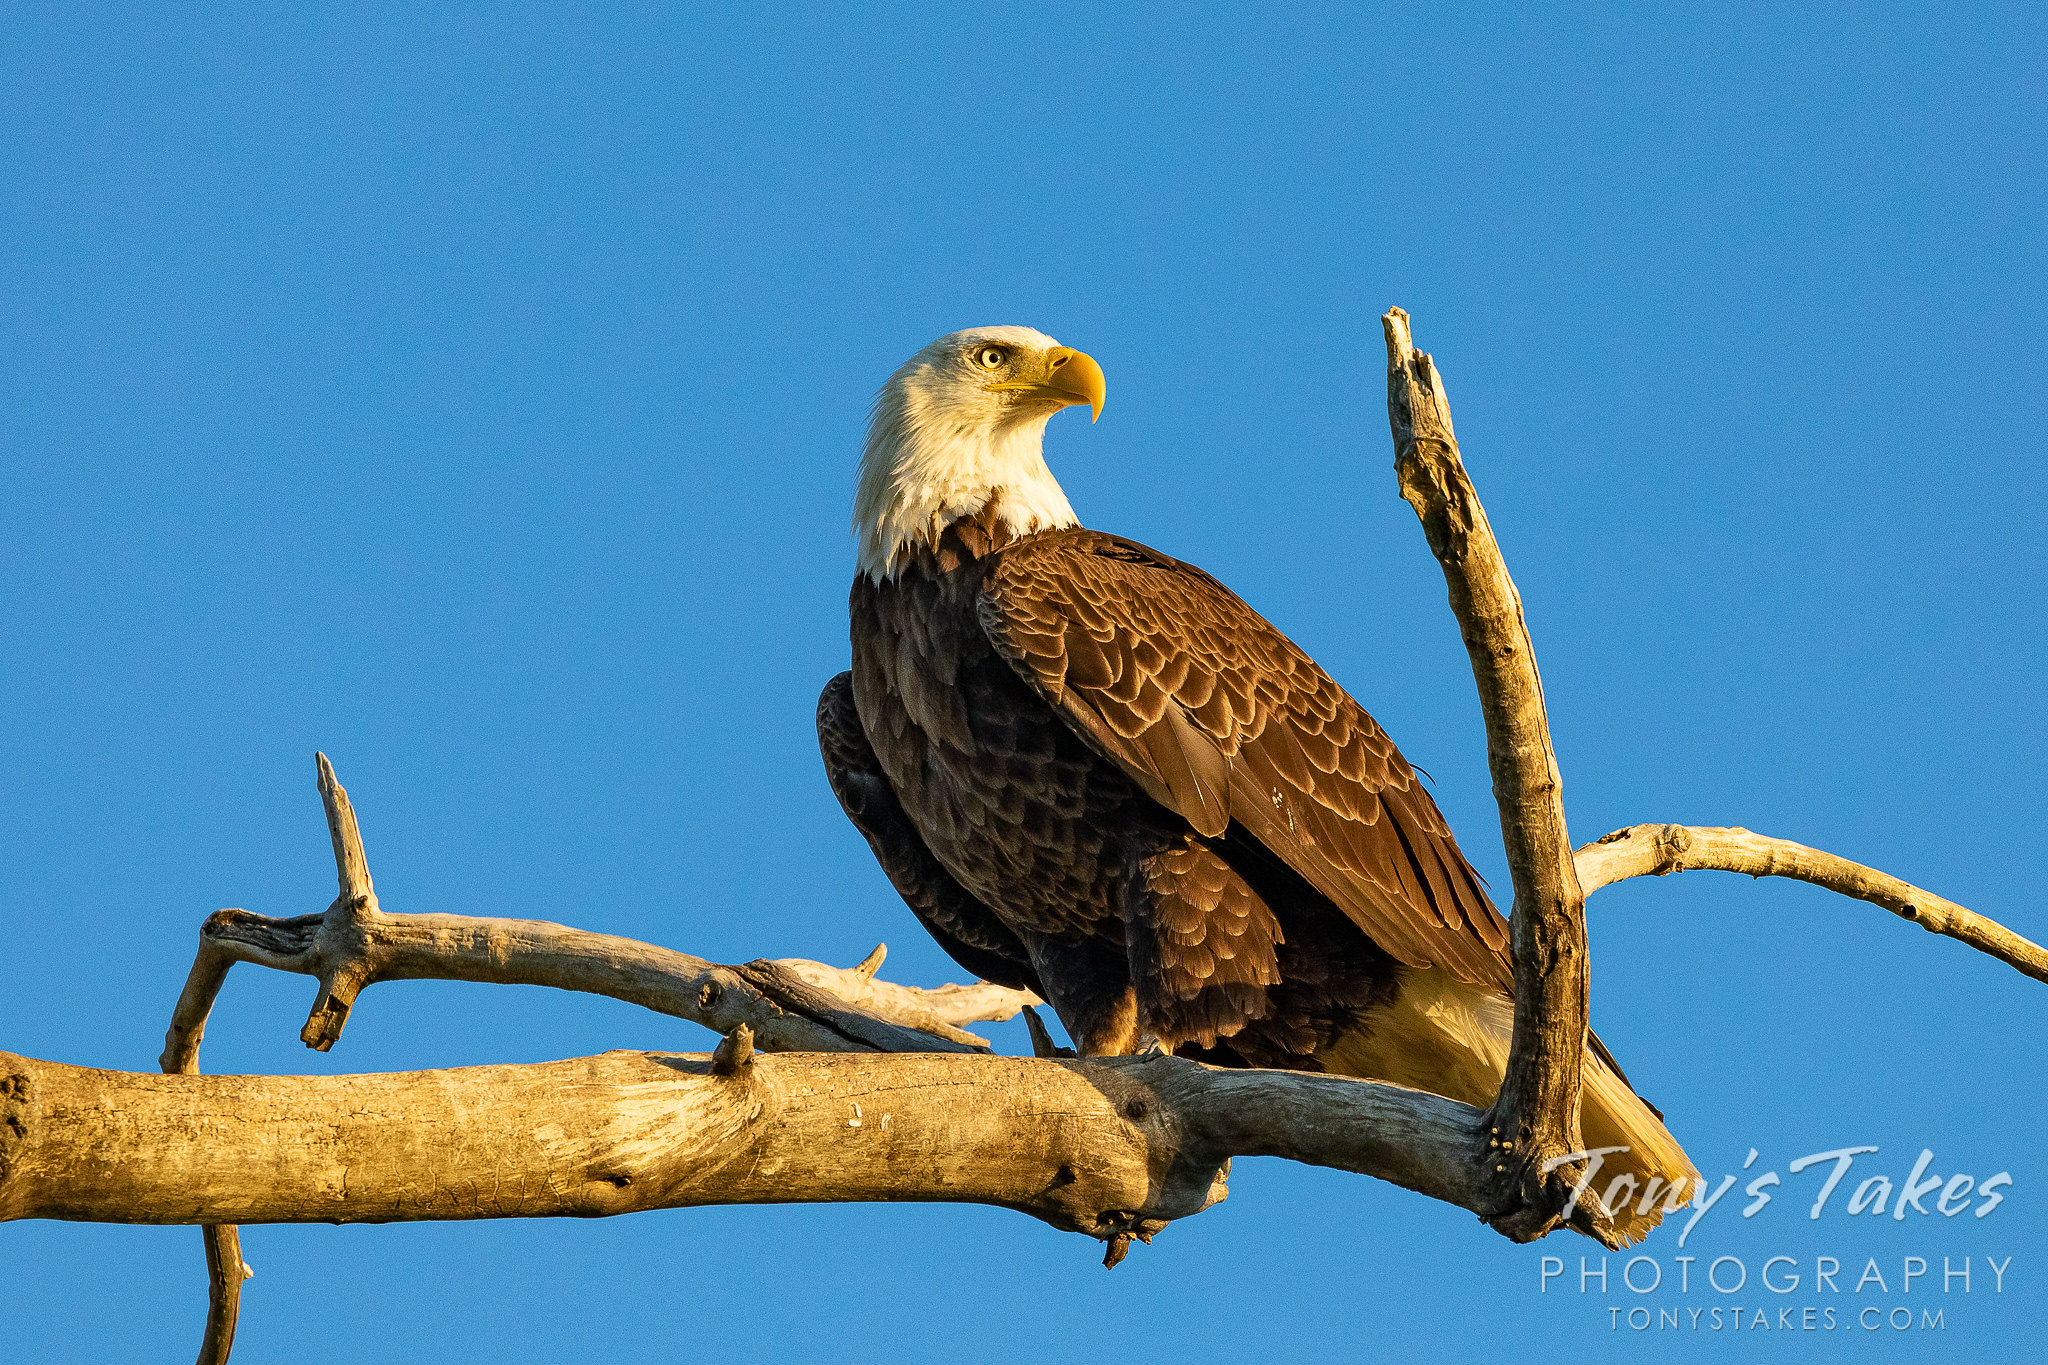 Bald eagle in dawn's early light